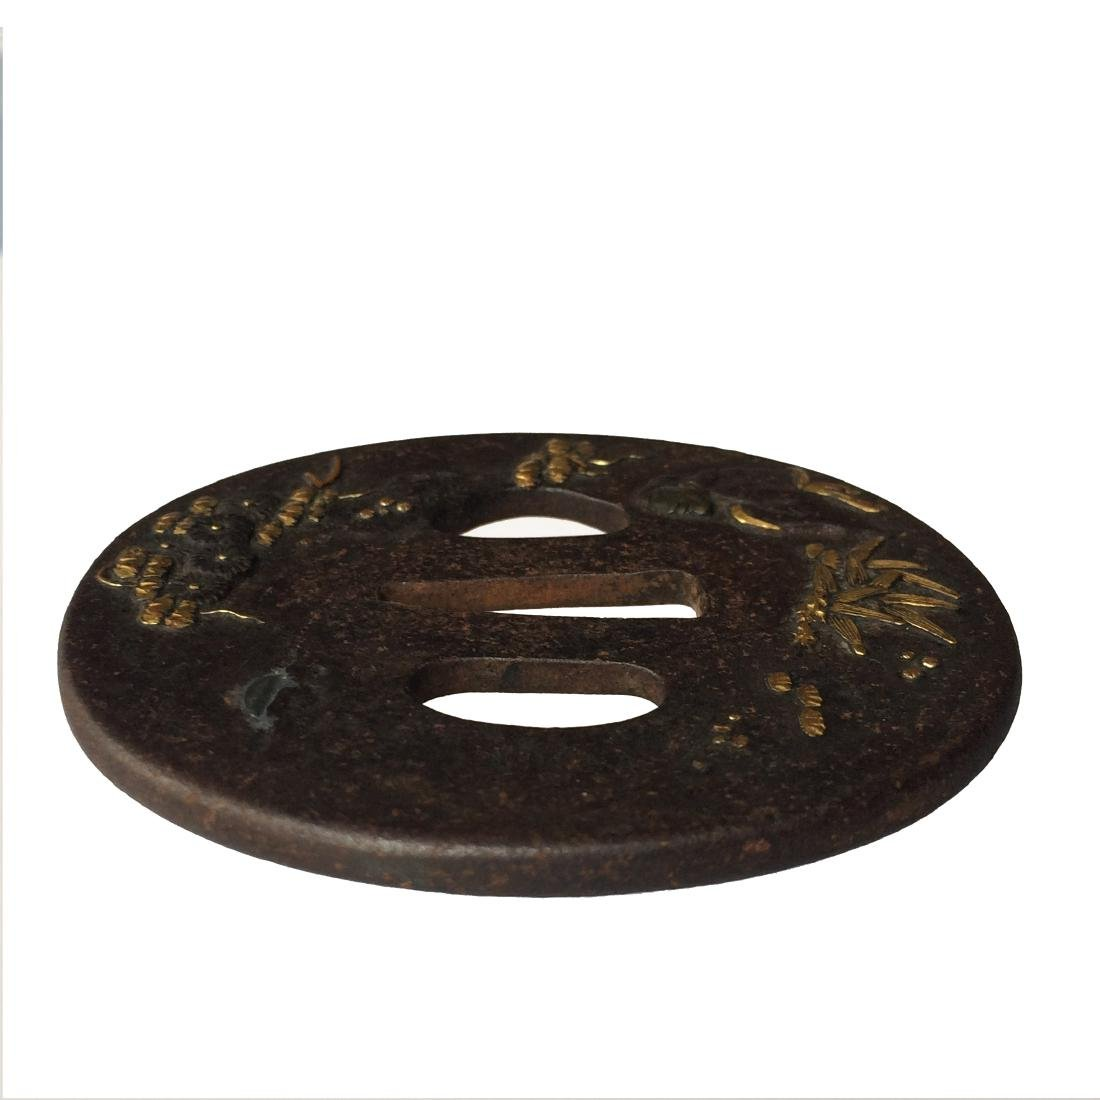 Iron tsuba carved and inlaid with shibuichi and gold - 2